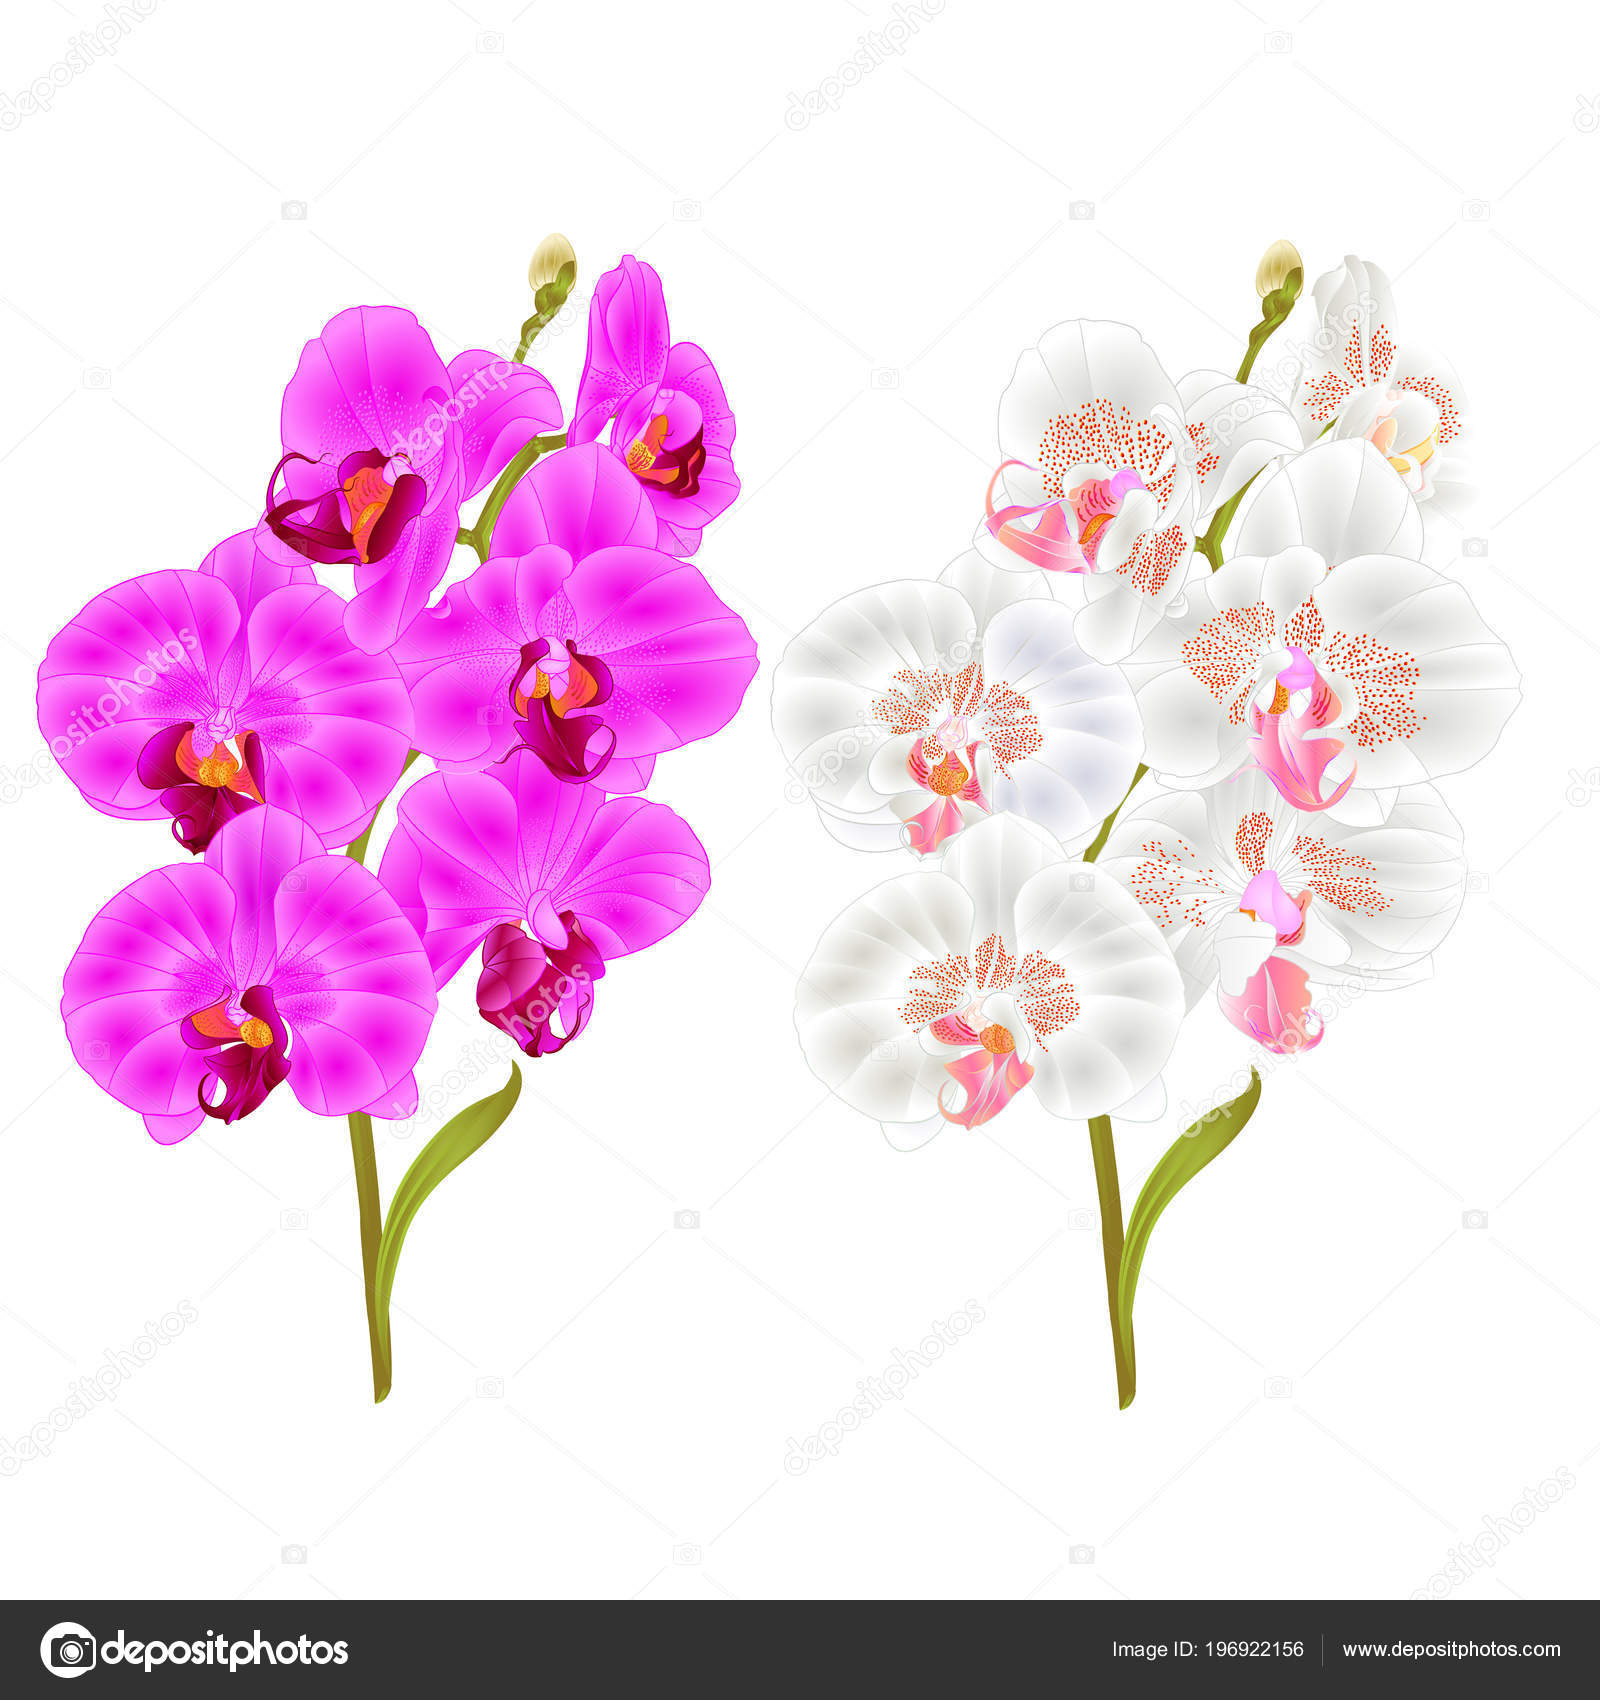 Branches orchid phalaenopsis purple white flowers leaves tropical branches orchid phalaenopsis purple and white flowers and leaves tropical plants stem and buds on a white background vintage vector botanical illustration mightylinksfo